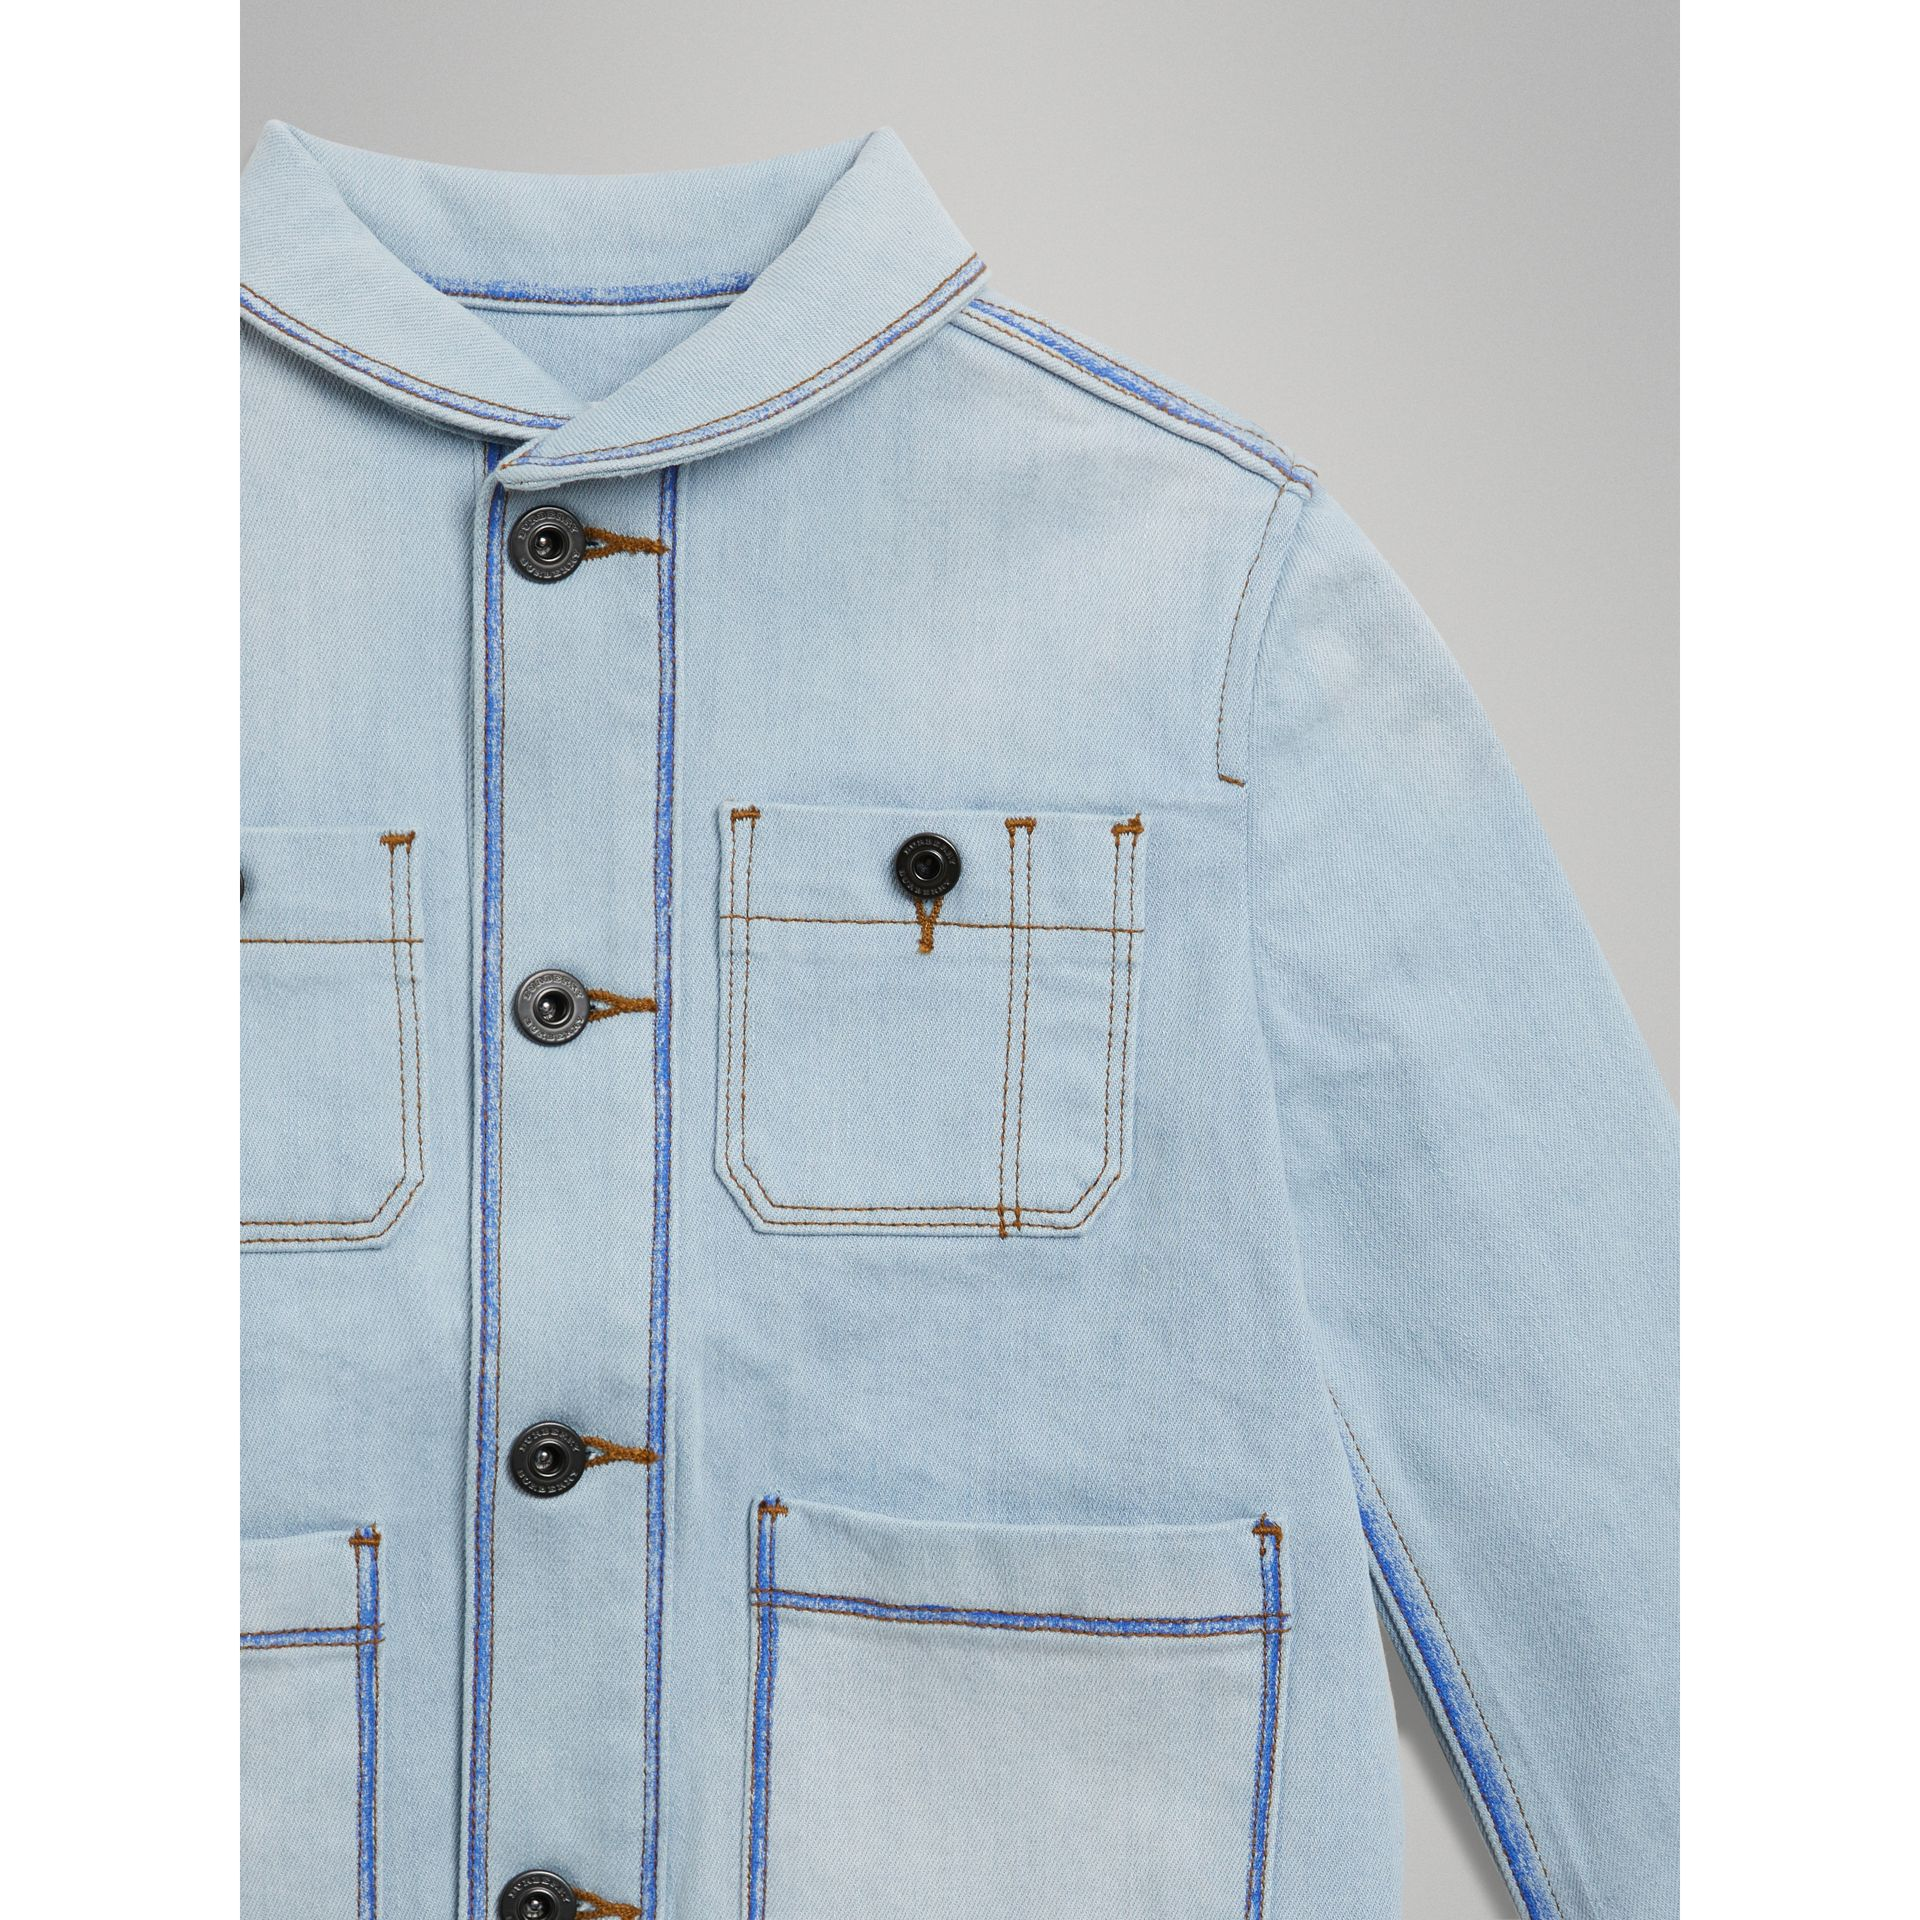 Marker Pen Print Denim Jacket in Light Blue - Girl | Burberry - gallery image 4